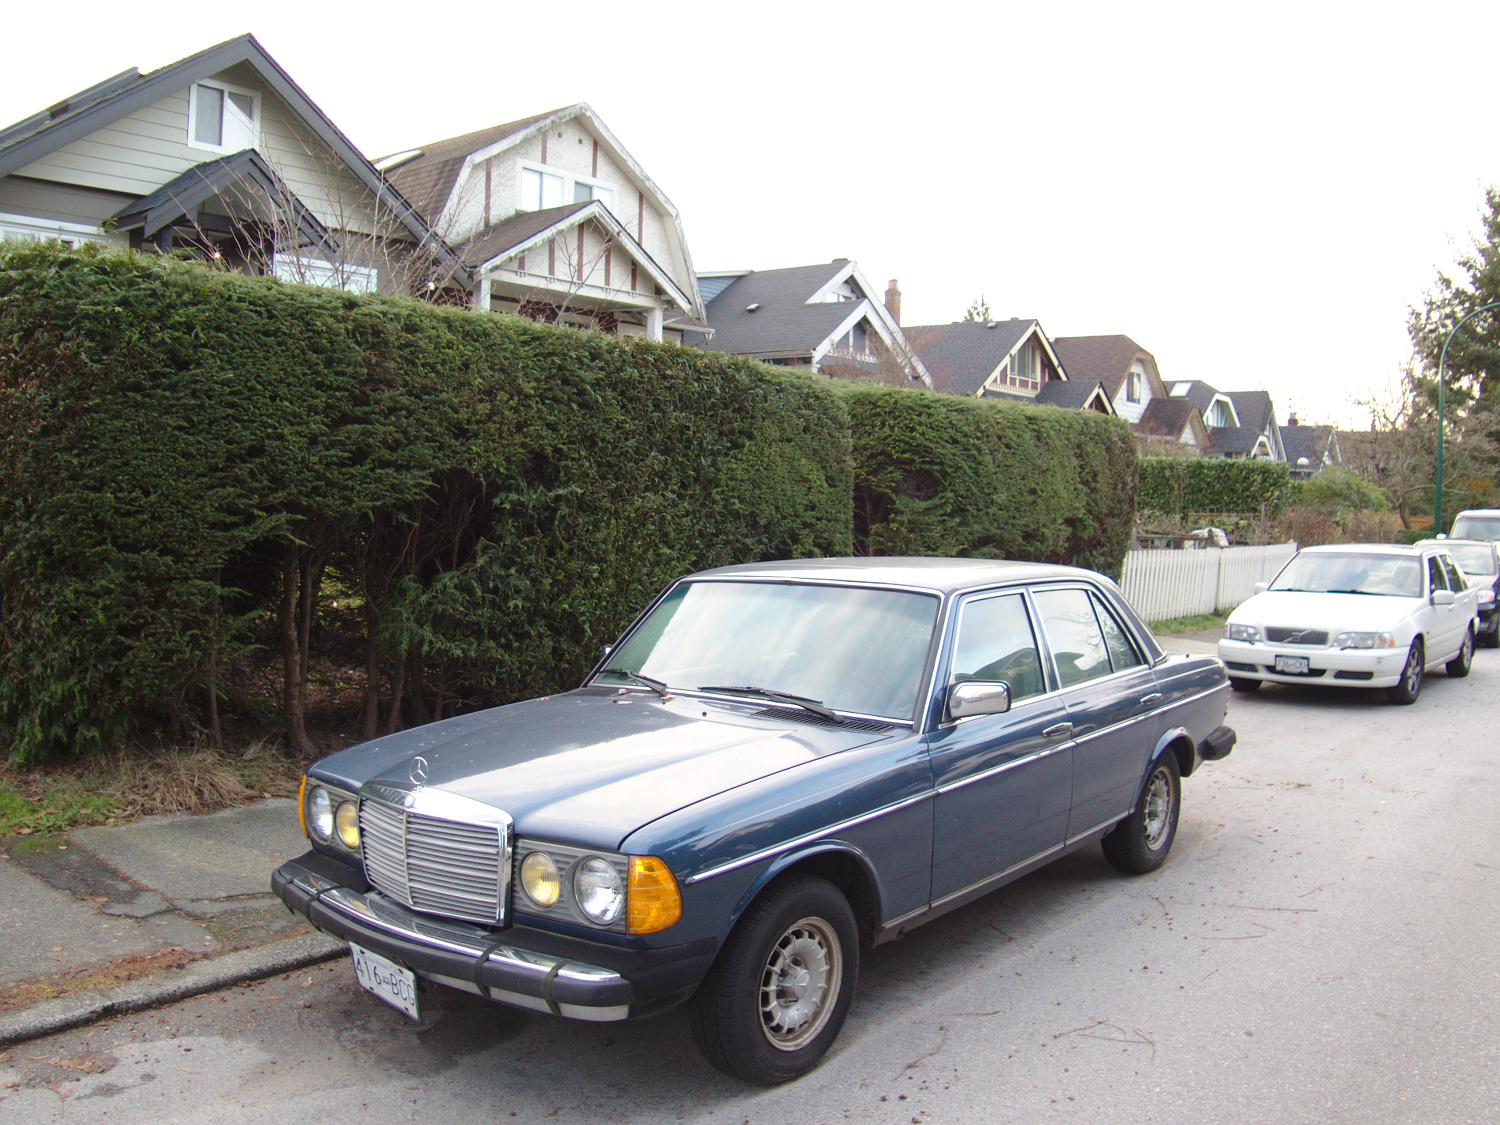 Old parked cars vancouver 1984 mercedes benz 300d turbodiesel for Mercedes benz 300d